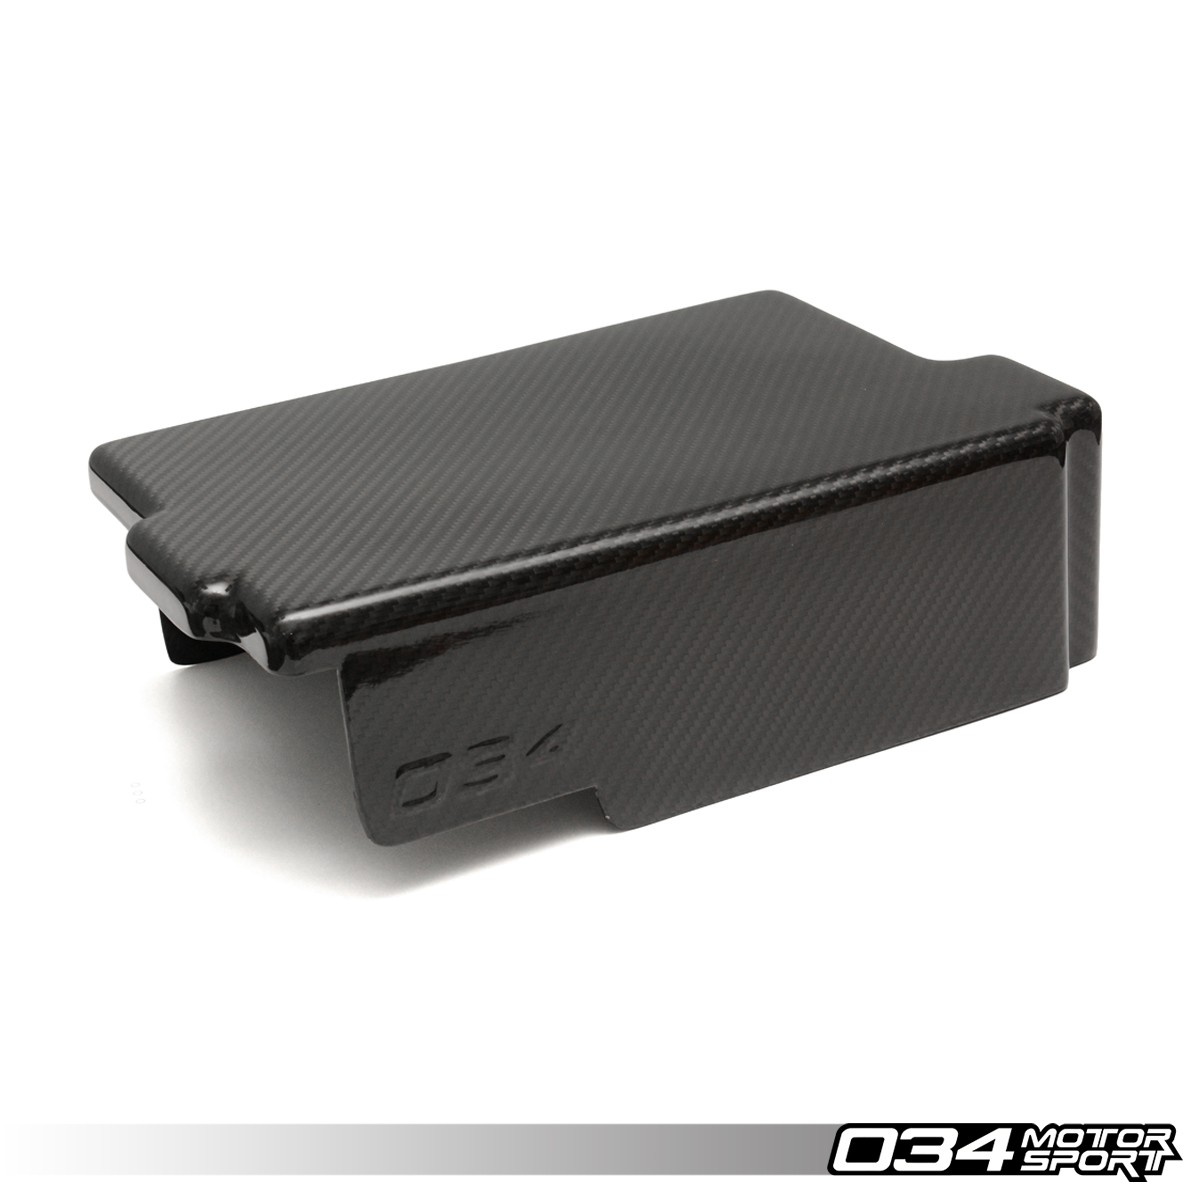 Carbon Fiber Battery Cover, MkVII Volkswagen GTI & Golf R, 8V Audi A3/S3 | 034-1ZZ-0001